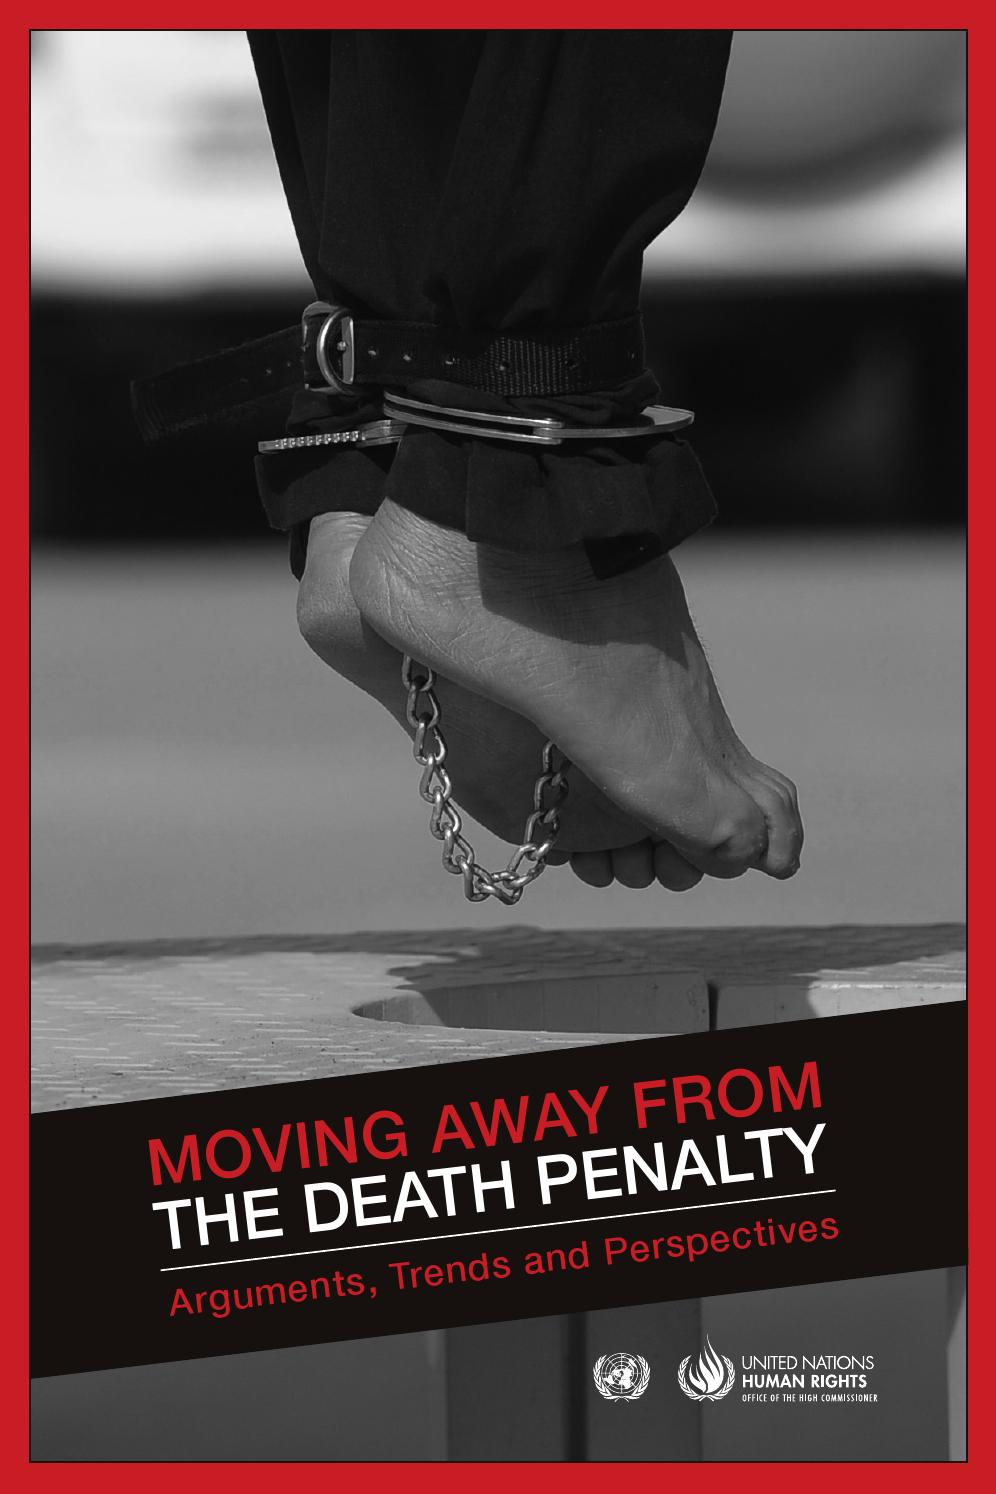 an argument against the death penalty in the eye of morality Argument against the death penalty life is sacred this is an ideal that the majority of people can agree upon to a certain extent for this reason taking the life of another has always been considered the most deplorable of crimes, one worthy of the harshest available punishment.